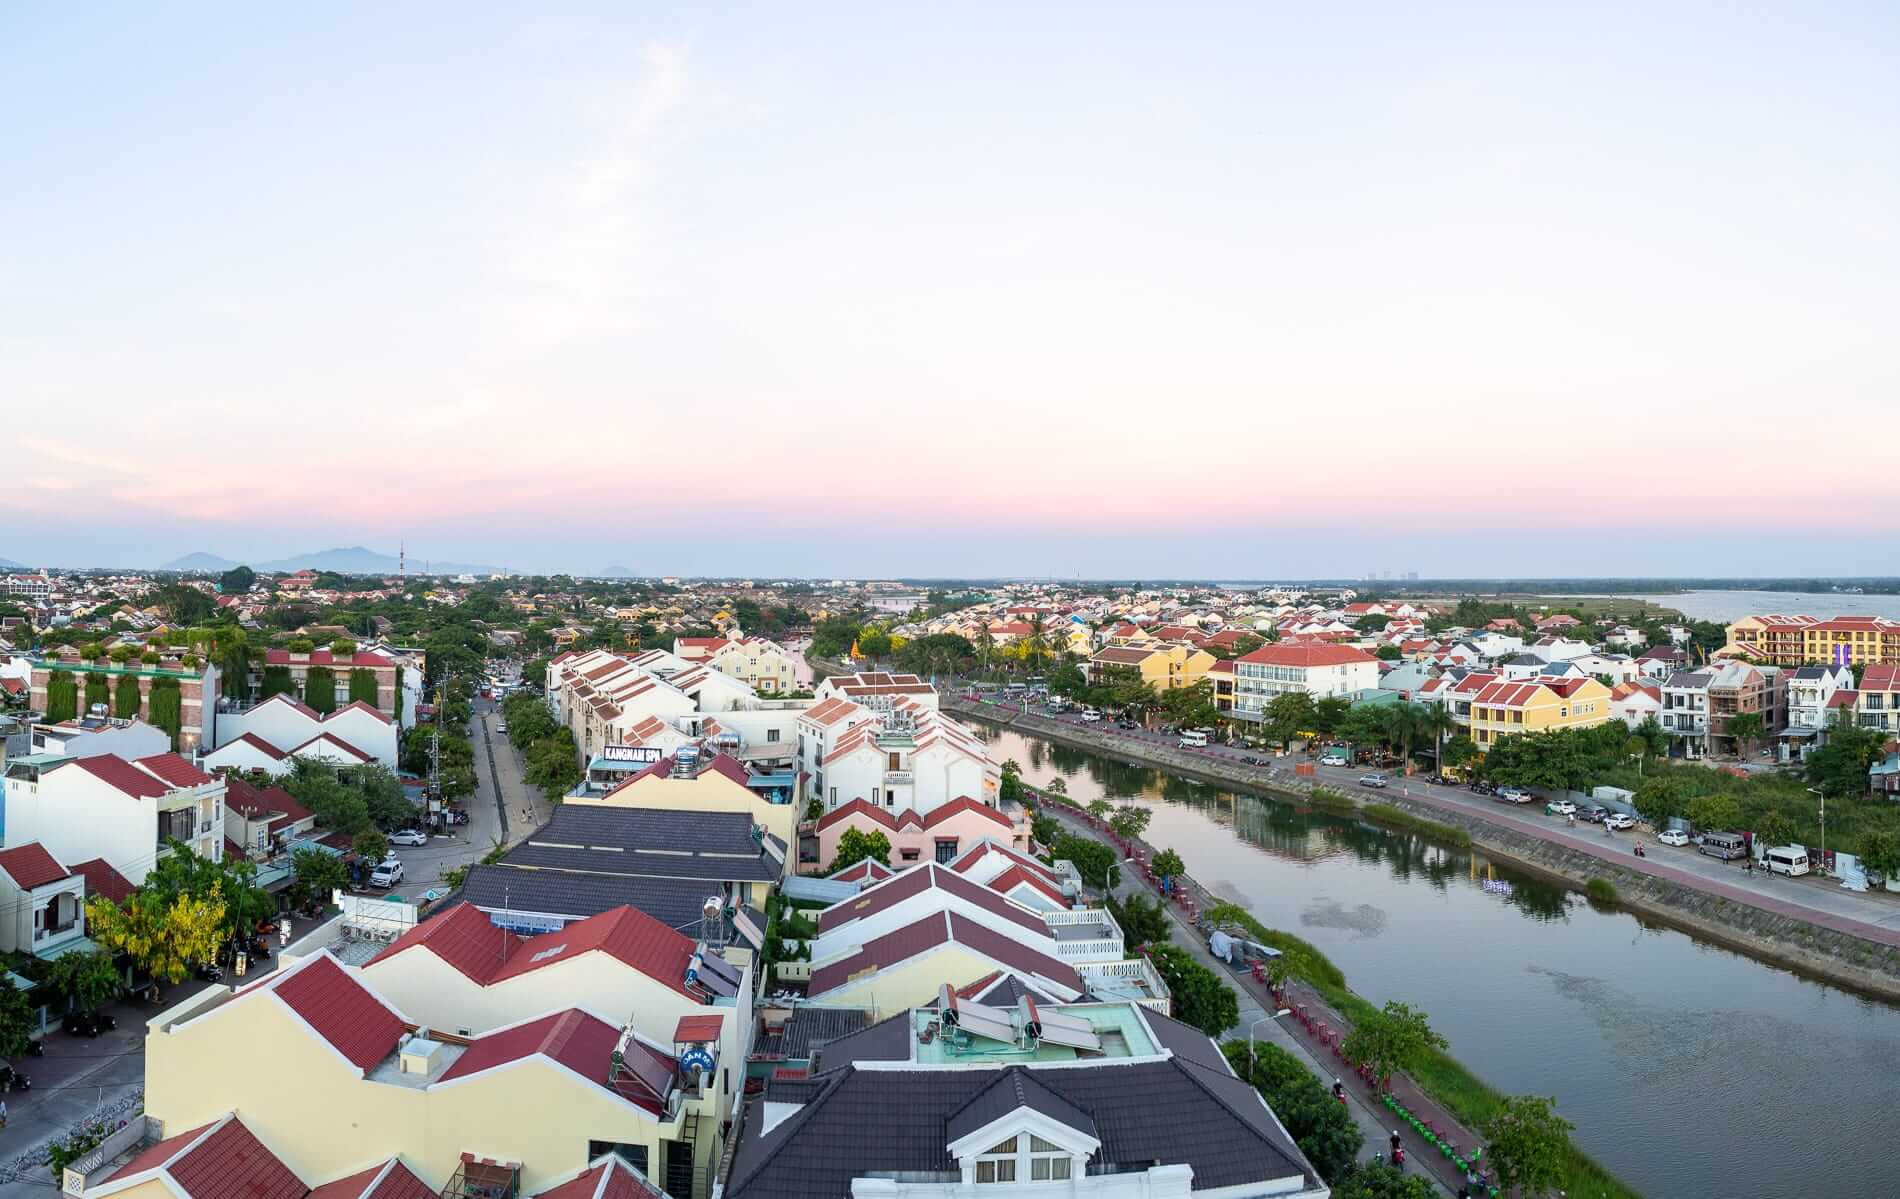 View from The Deck at The Hotel Royal - Hoi An Ancient Town